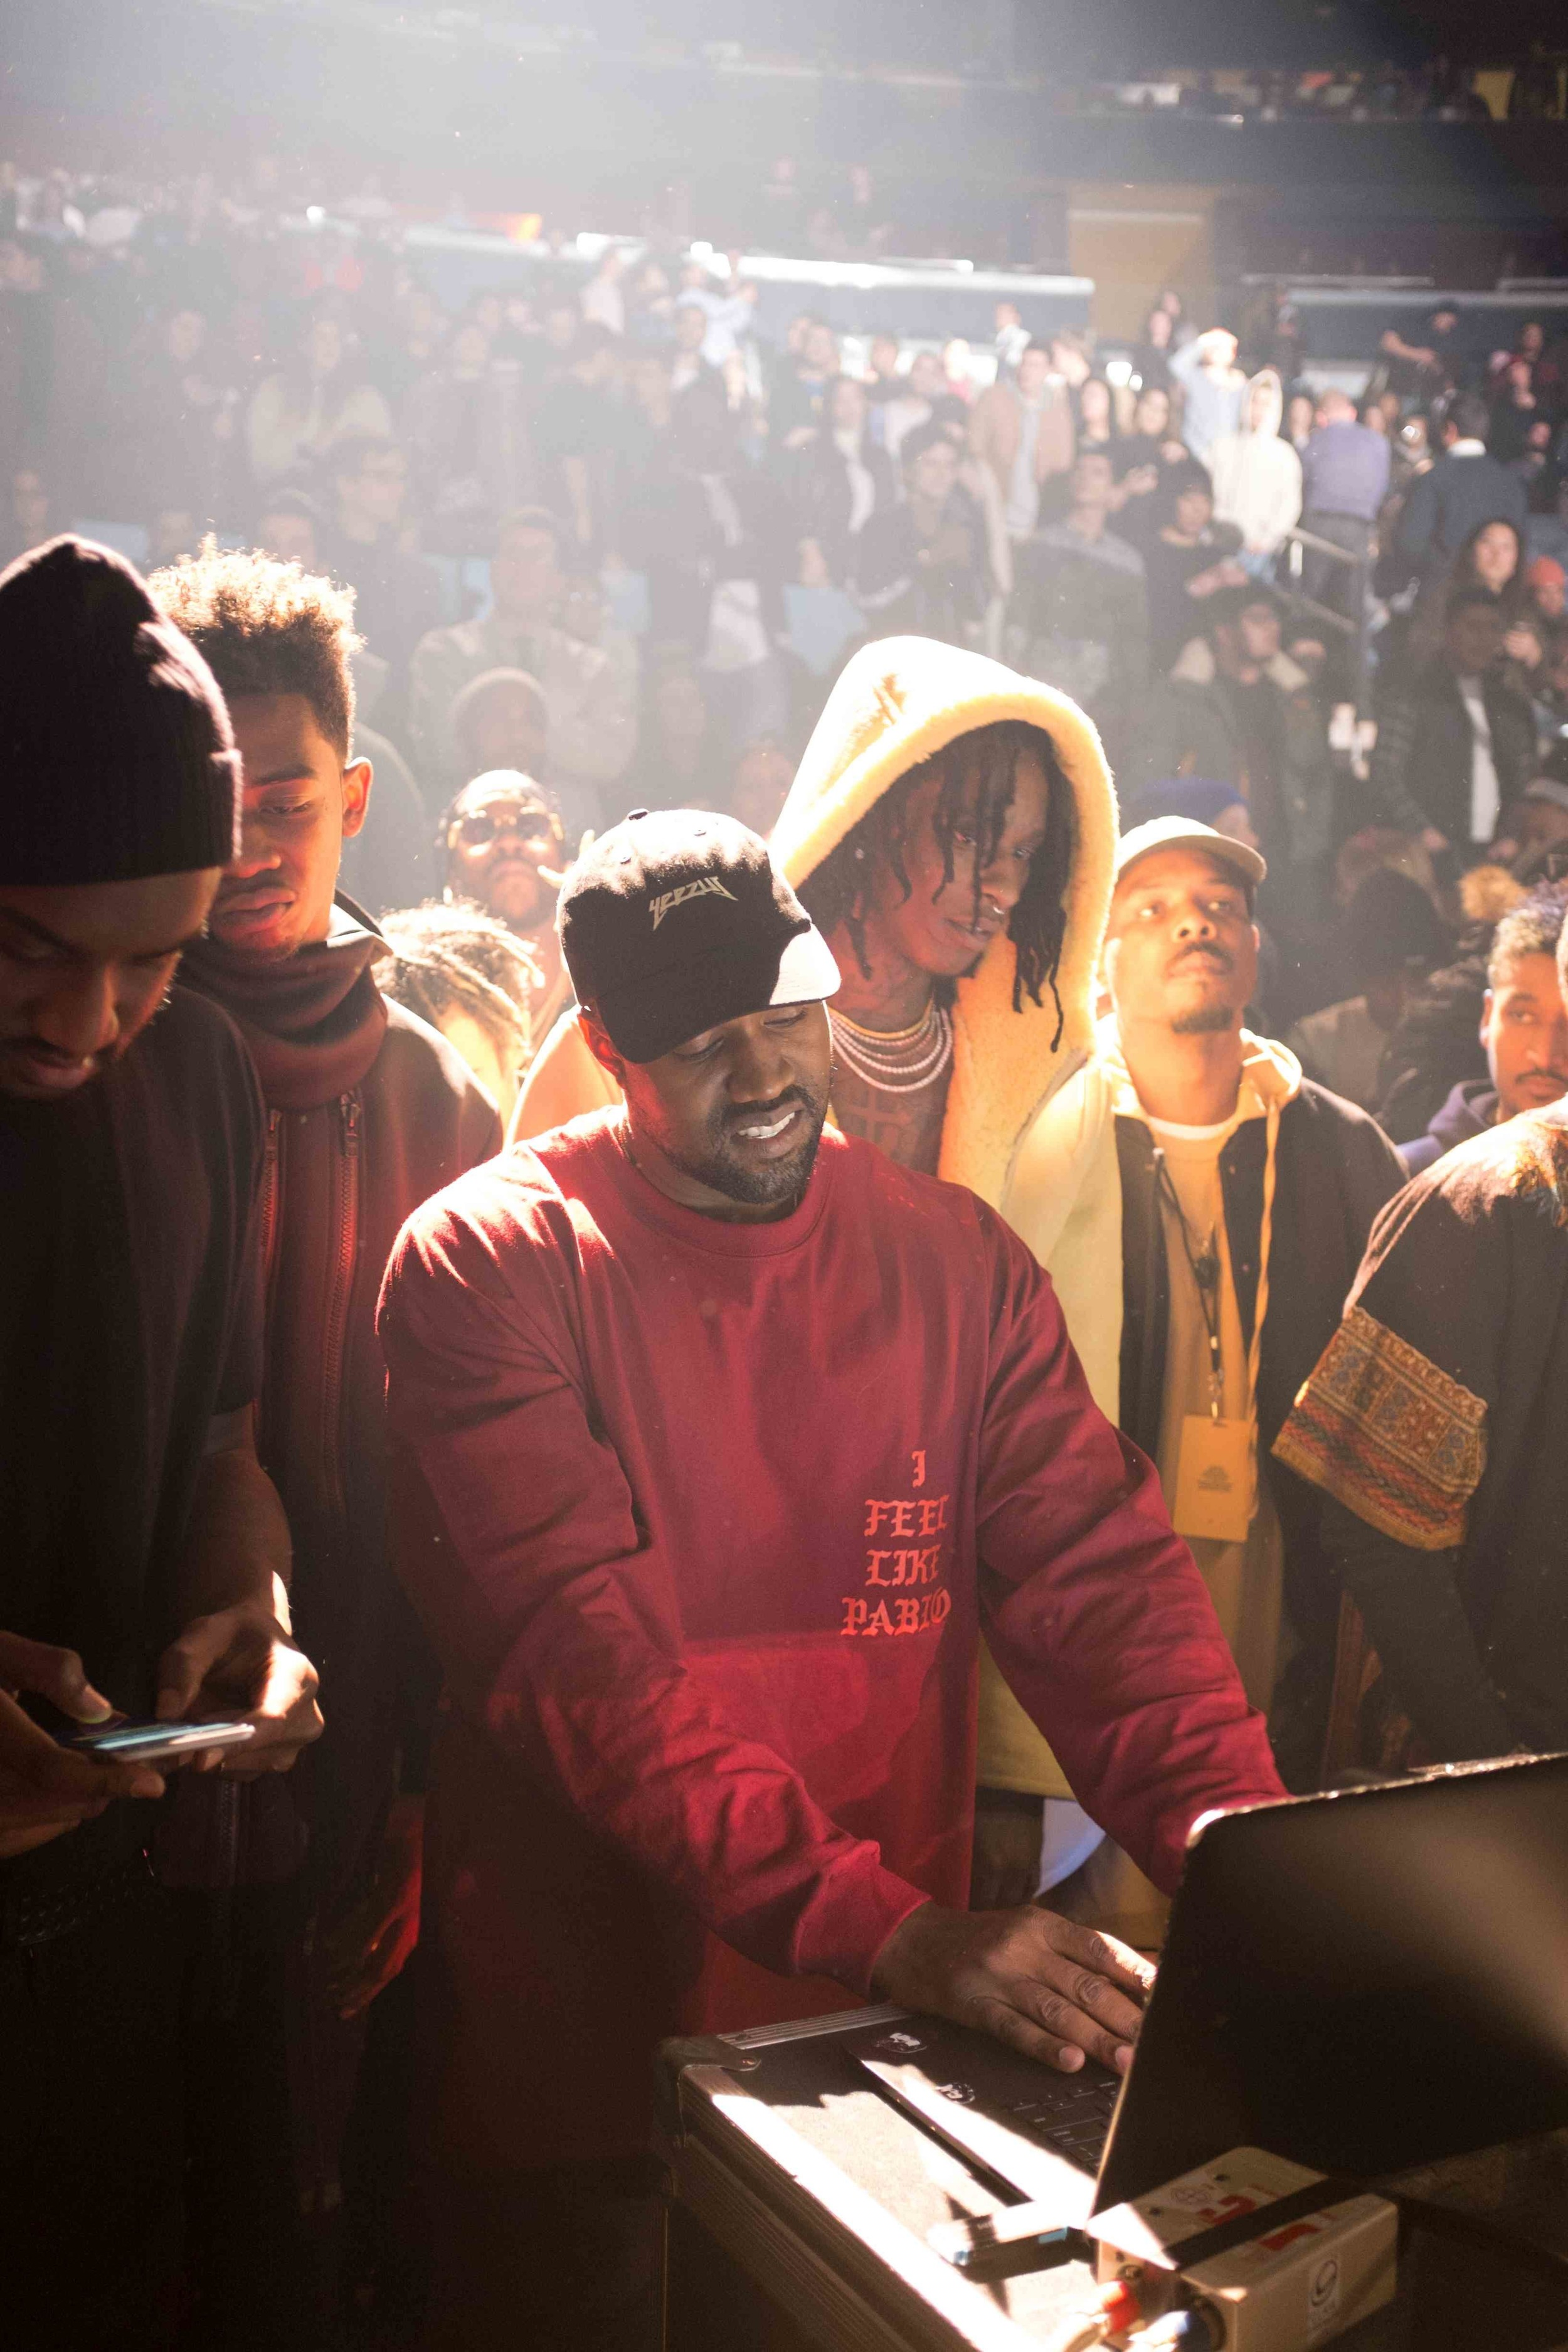 8ebd0f11e04559 Backstage Photos from Kanye s Massive Fashion Show - VICE